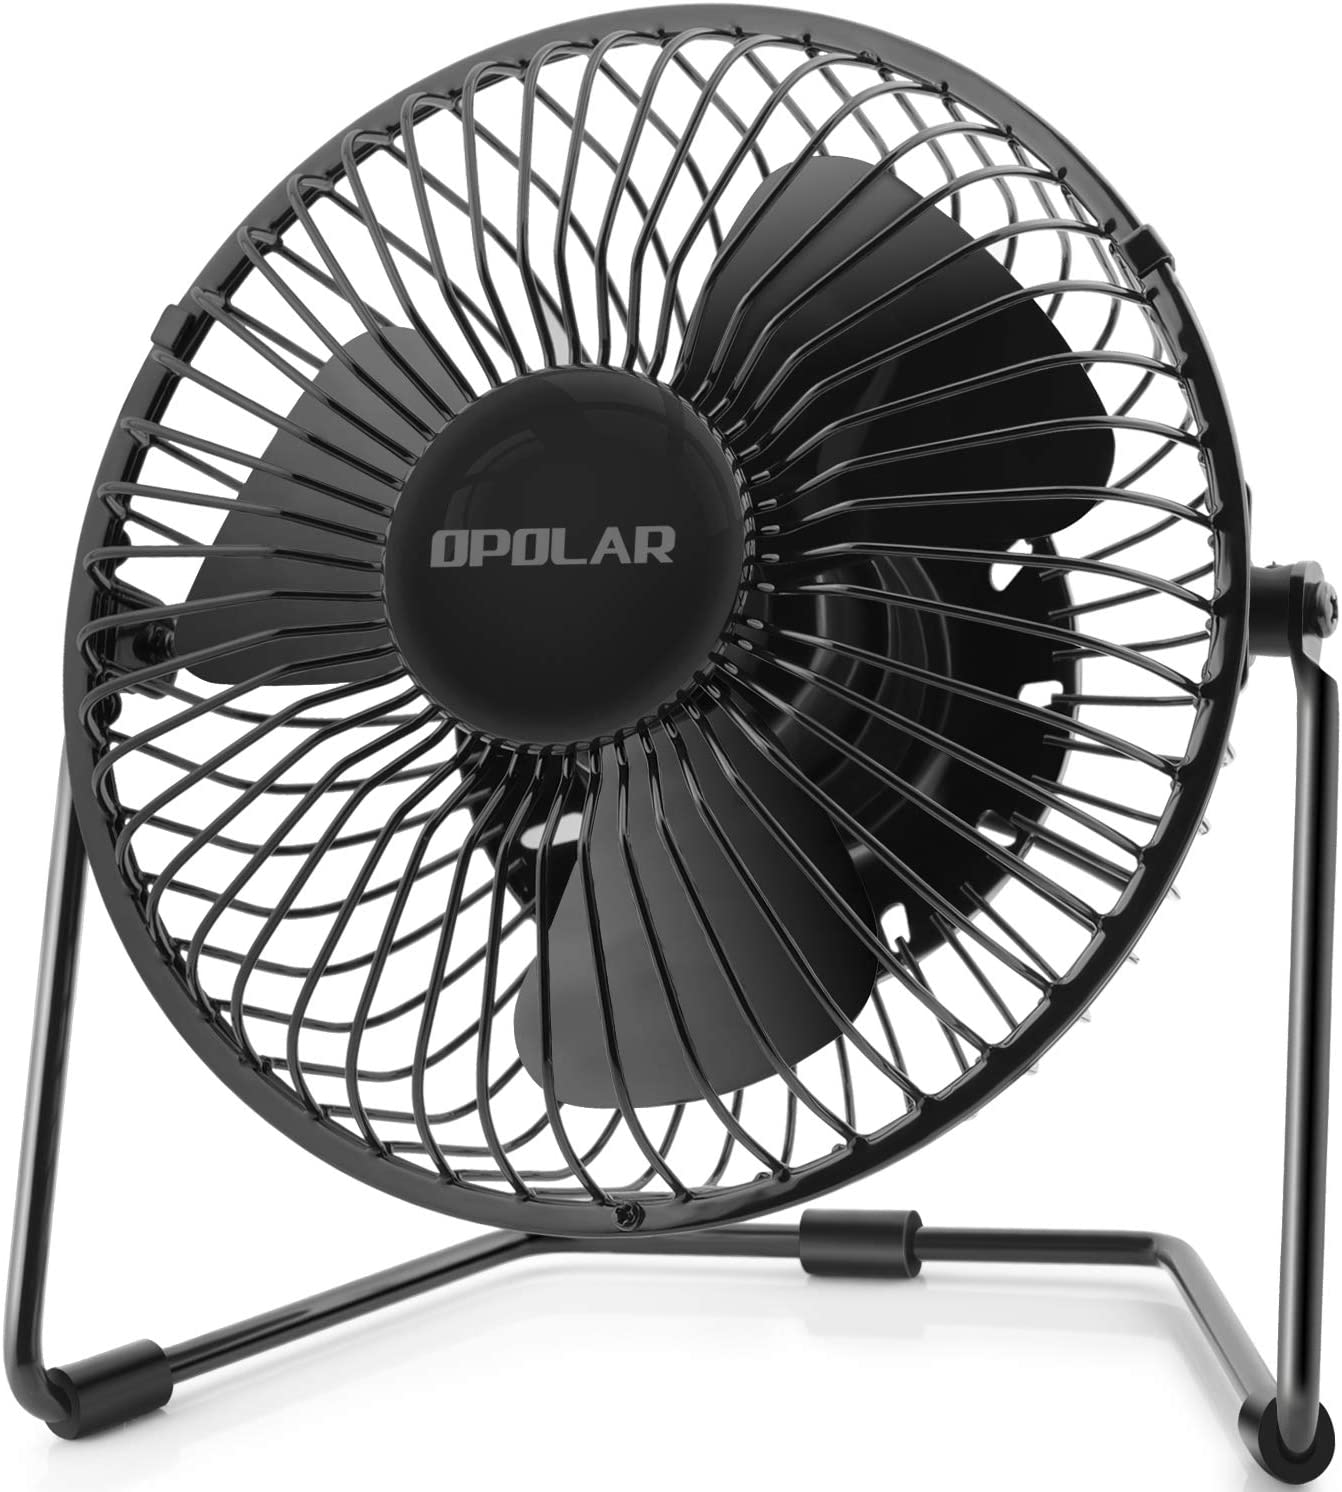 OPOLAR 5-Inch USB Desk Fan, Portable Mini Personal Fan with Two Speed-Settings, Super Quiet, Metal Design, 360 Up and Down, Perfect for Home, Office